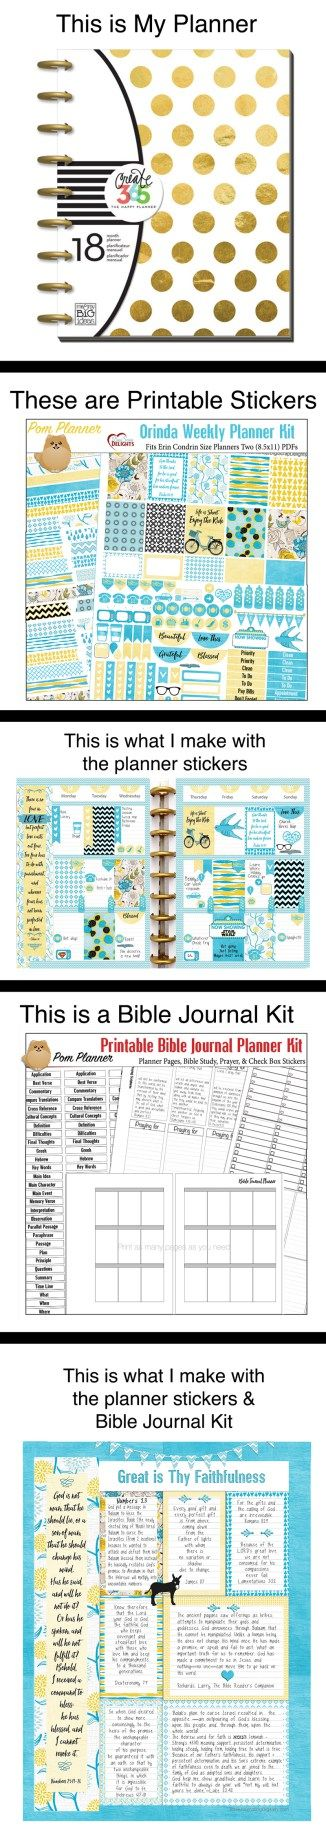 Bible journaling in a Happy Planner. #plannerstickers #plannerlove #Biblejournaling #pomplanner #BibleJournalKit